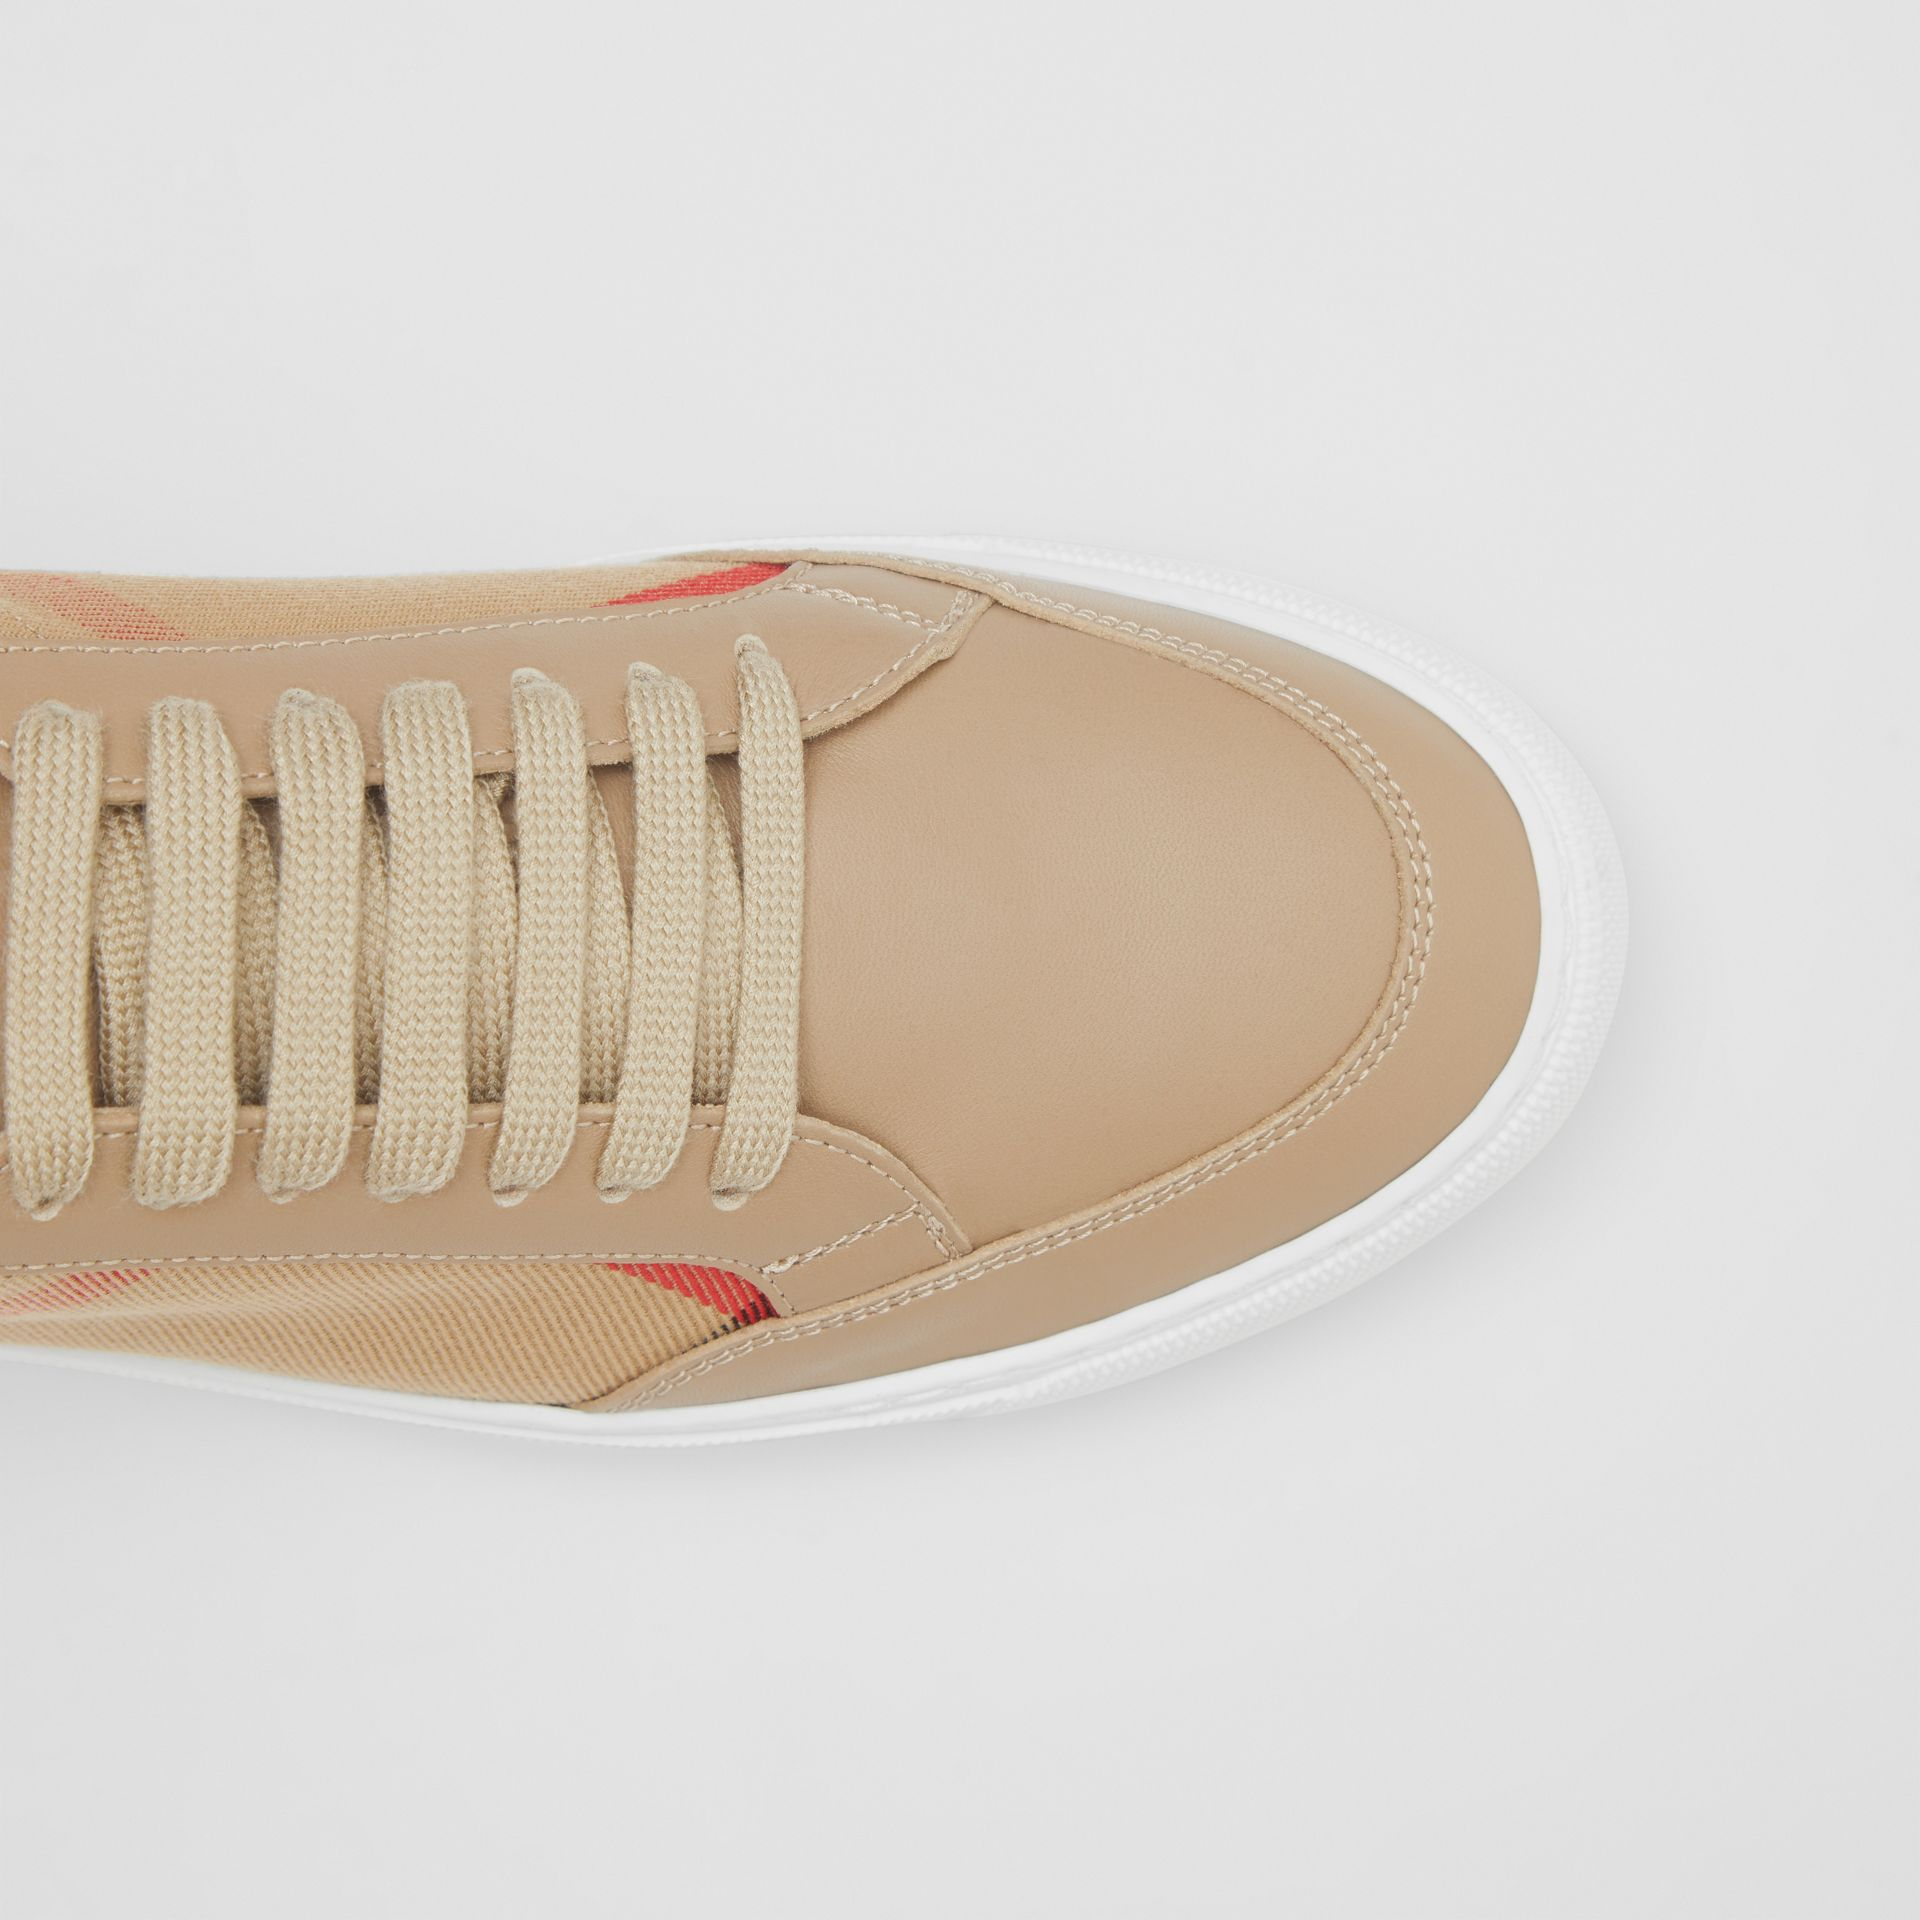 House Check and Leather Sneakers in Tan - Women | Burberry United Kingdom - gallery image 1